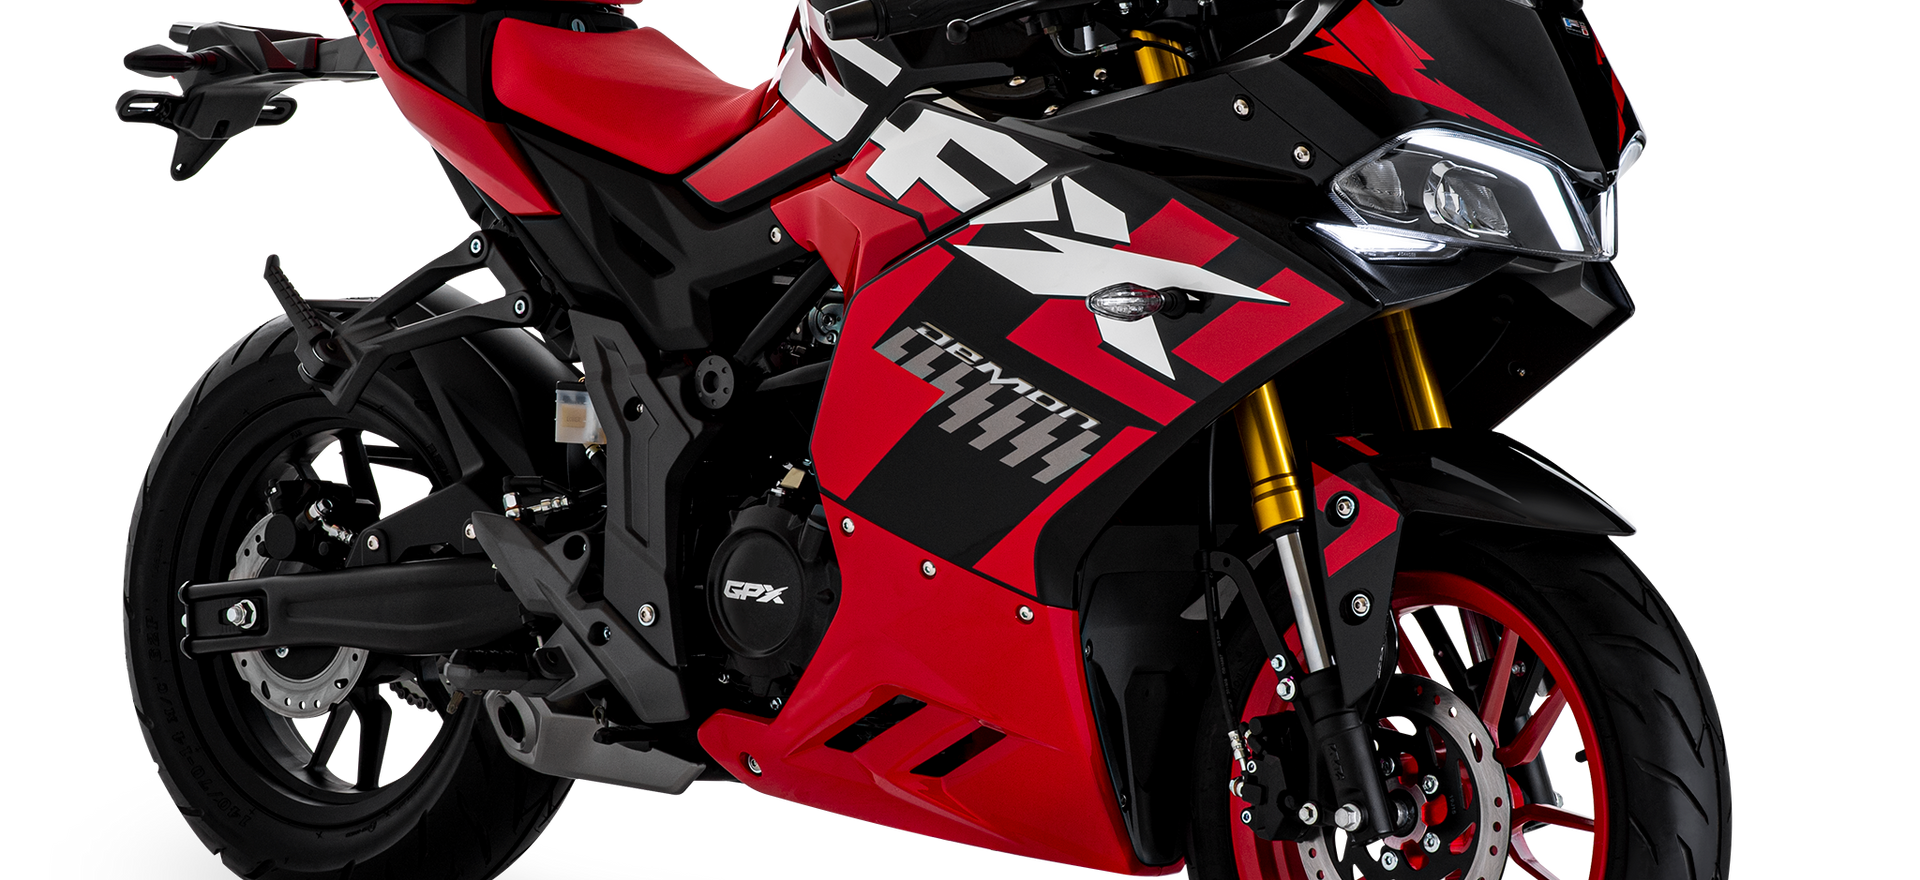 04-GPX-RED-BLACK-45-Degree-Angle-0200.pn